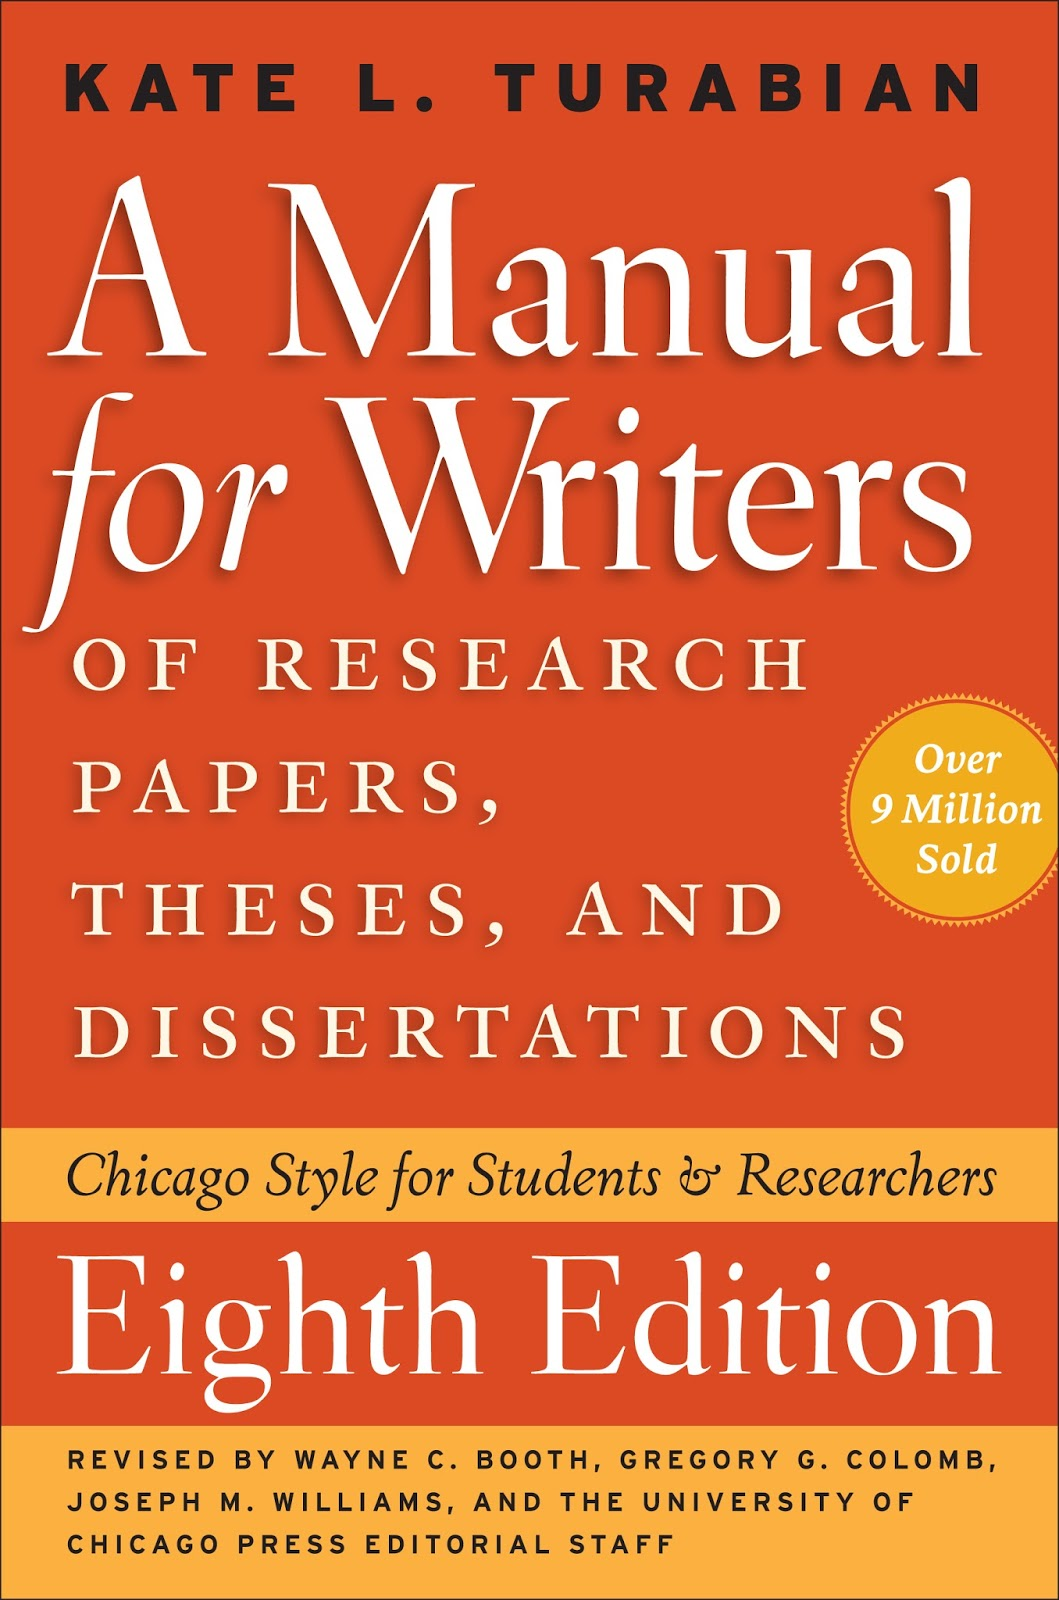 a manual for writers of research papers theses and dissertations a manual for writers of research papers theses and dissertations exclusive for deped tambayan members